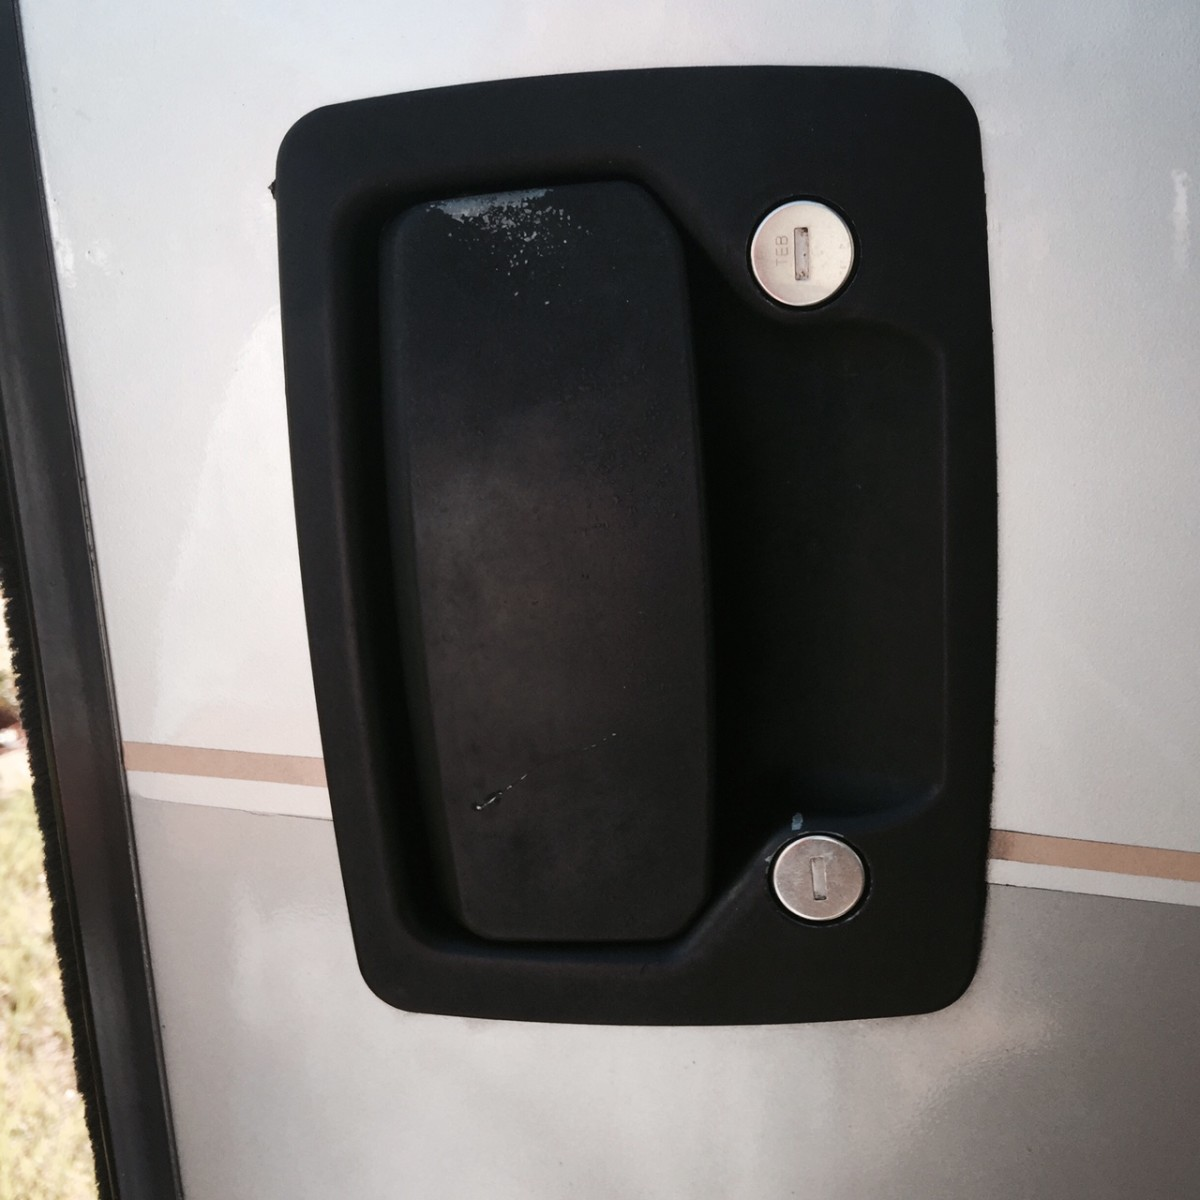 The handle and lock on the door of my RV.